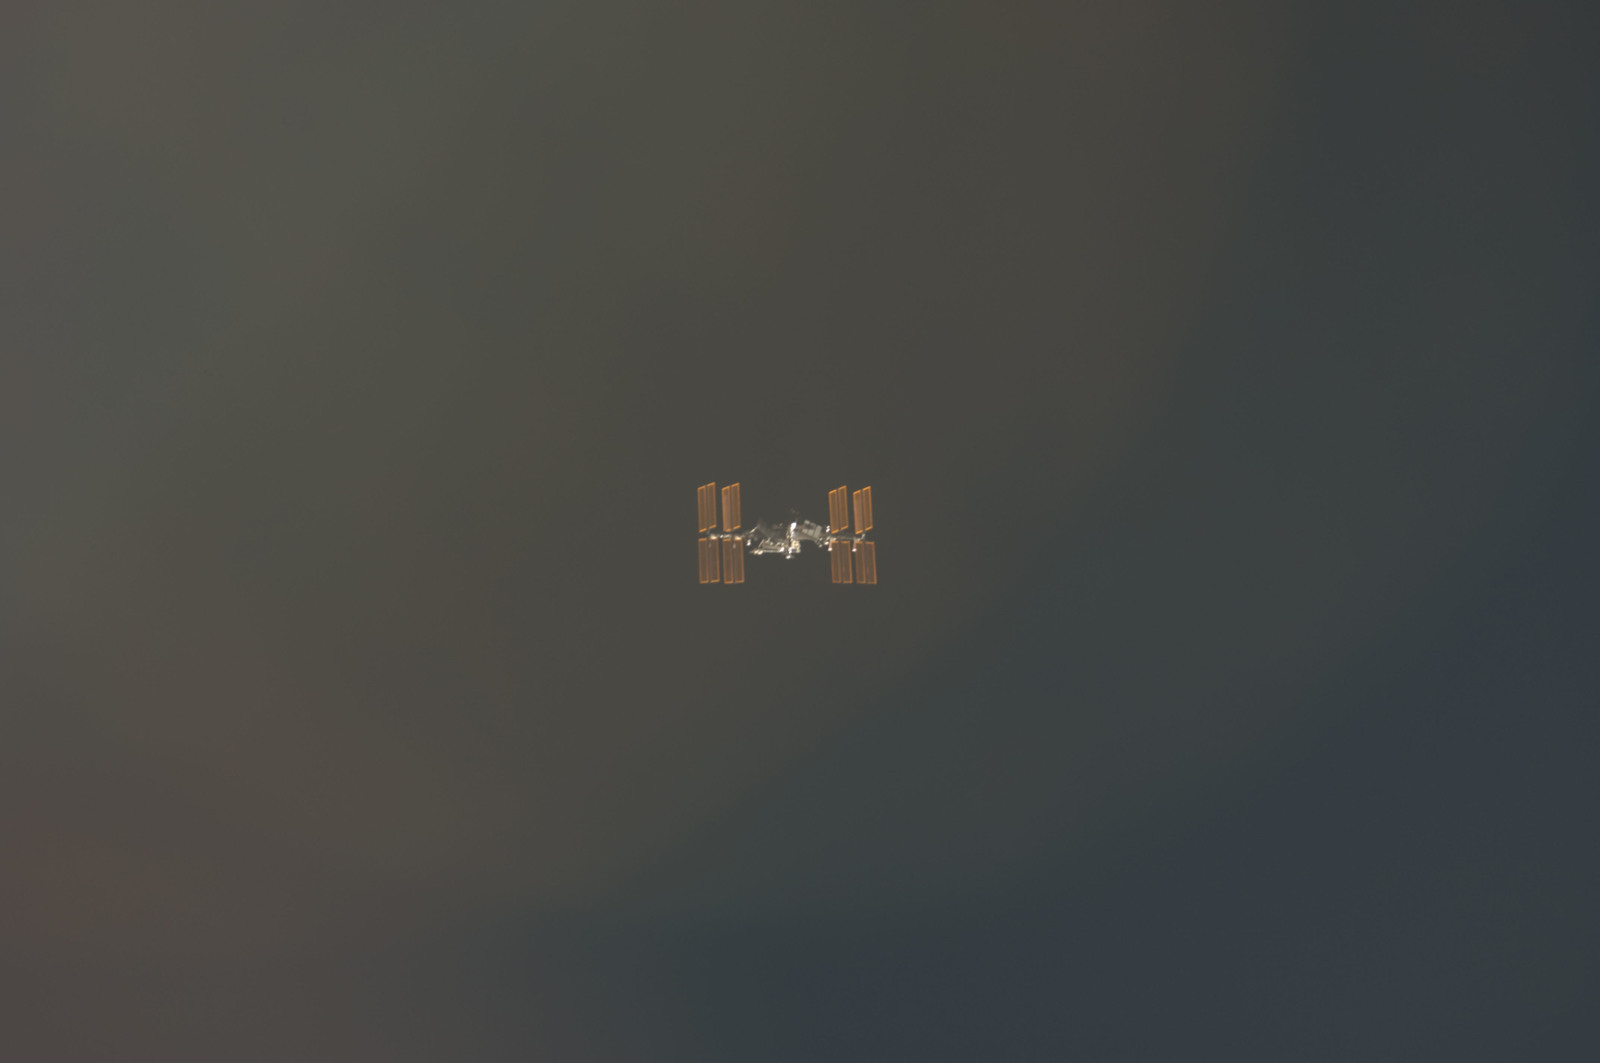 S134E006573 - STS-134 - Overall view of ISS taken during STS-134 Approach